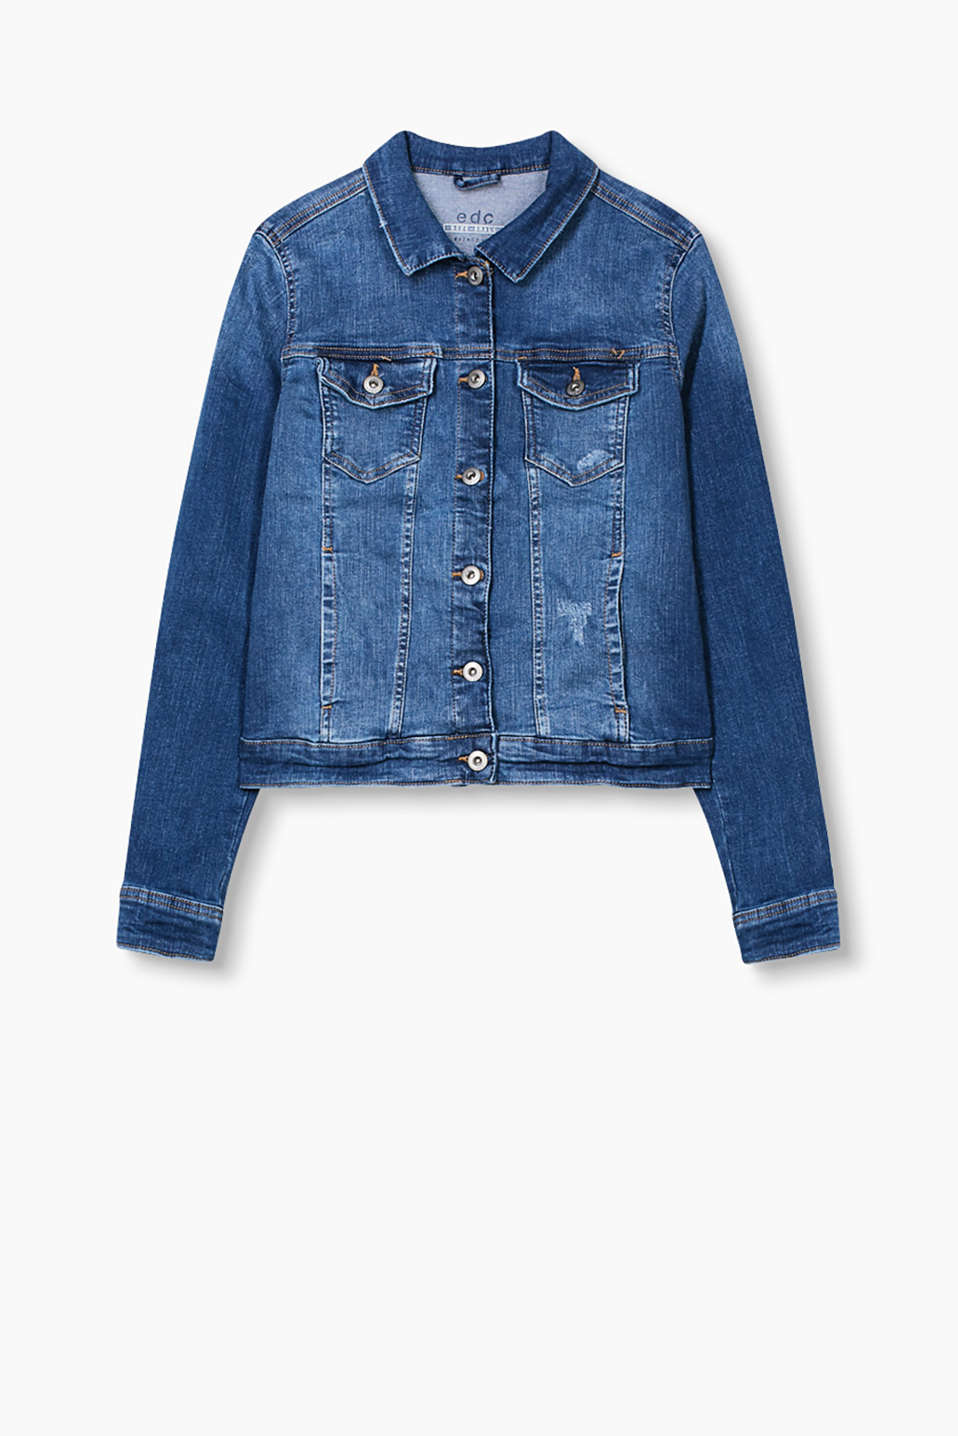 Cool classic: femininely figure-hugging jacket made of distressed stretch denim